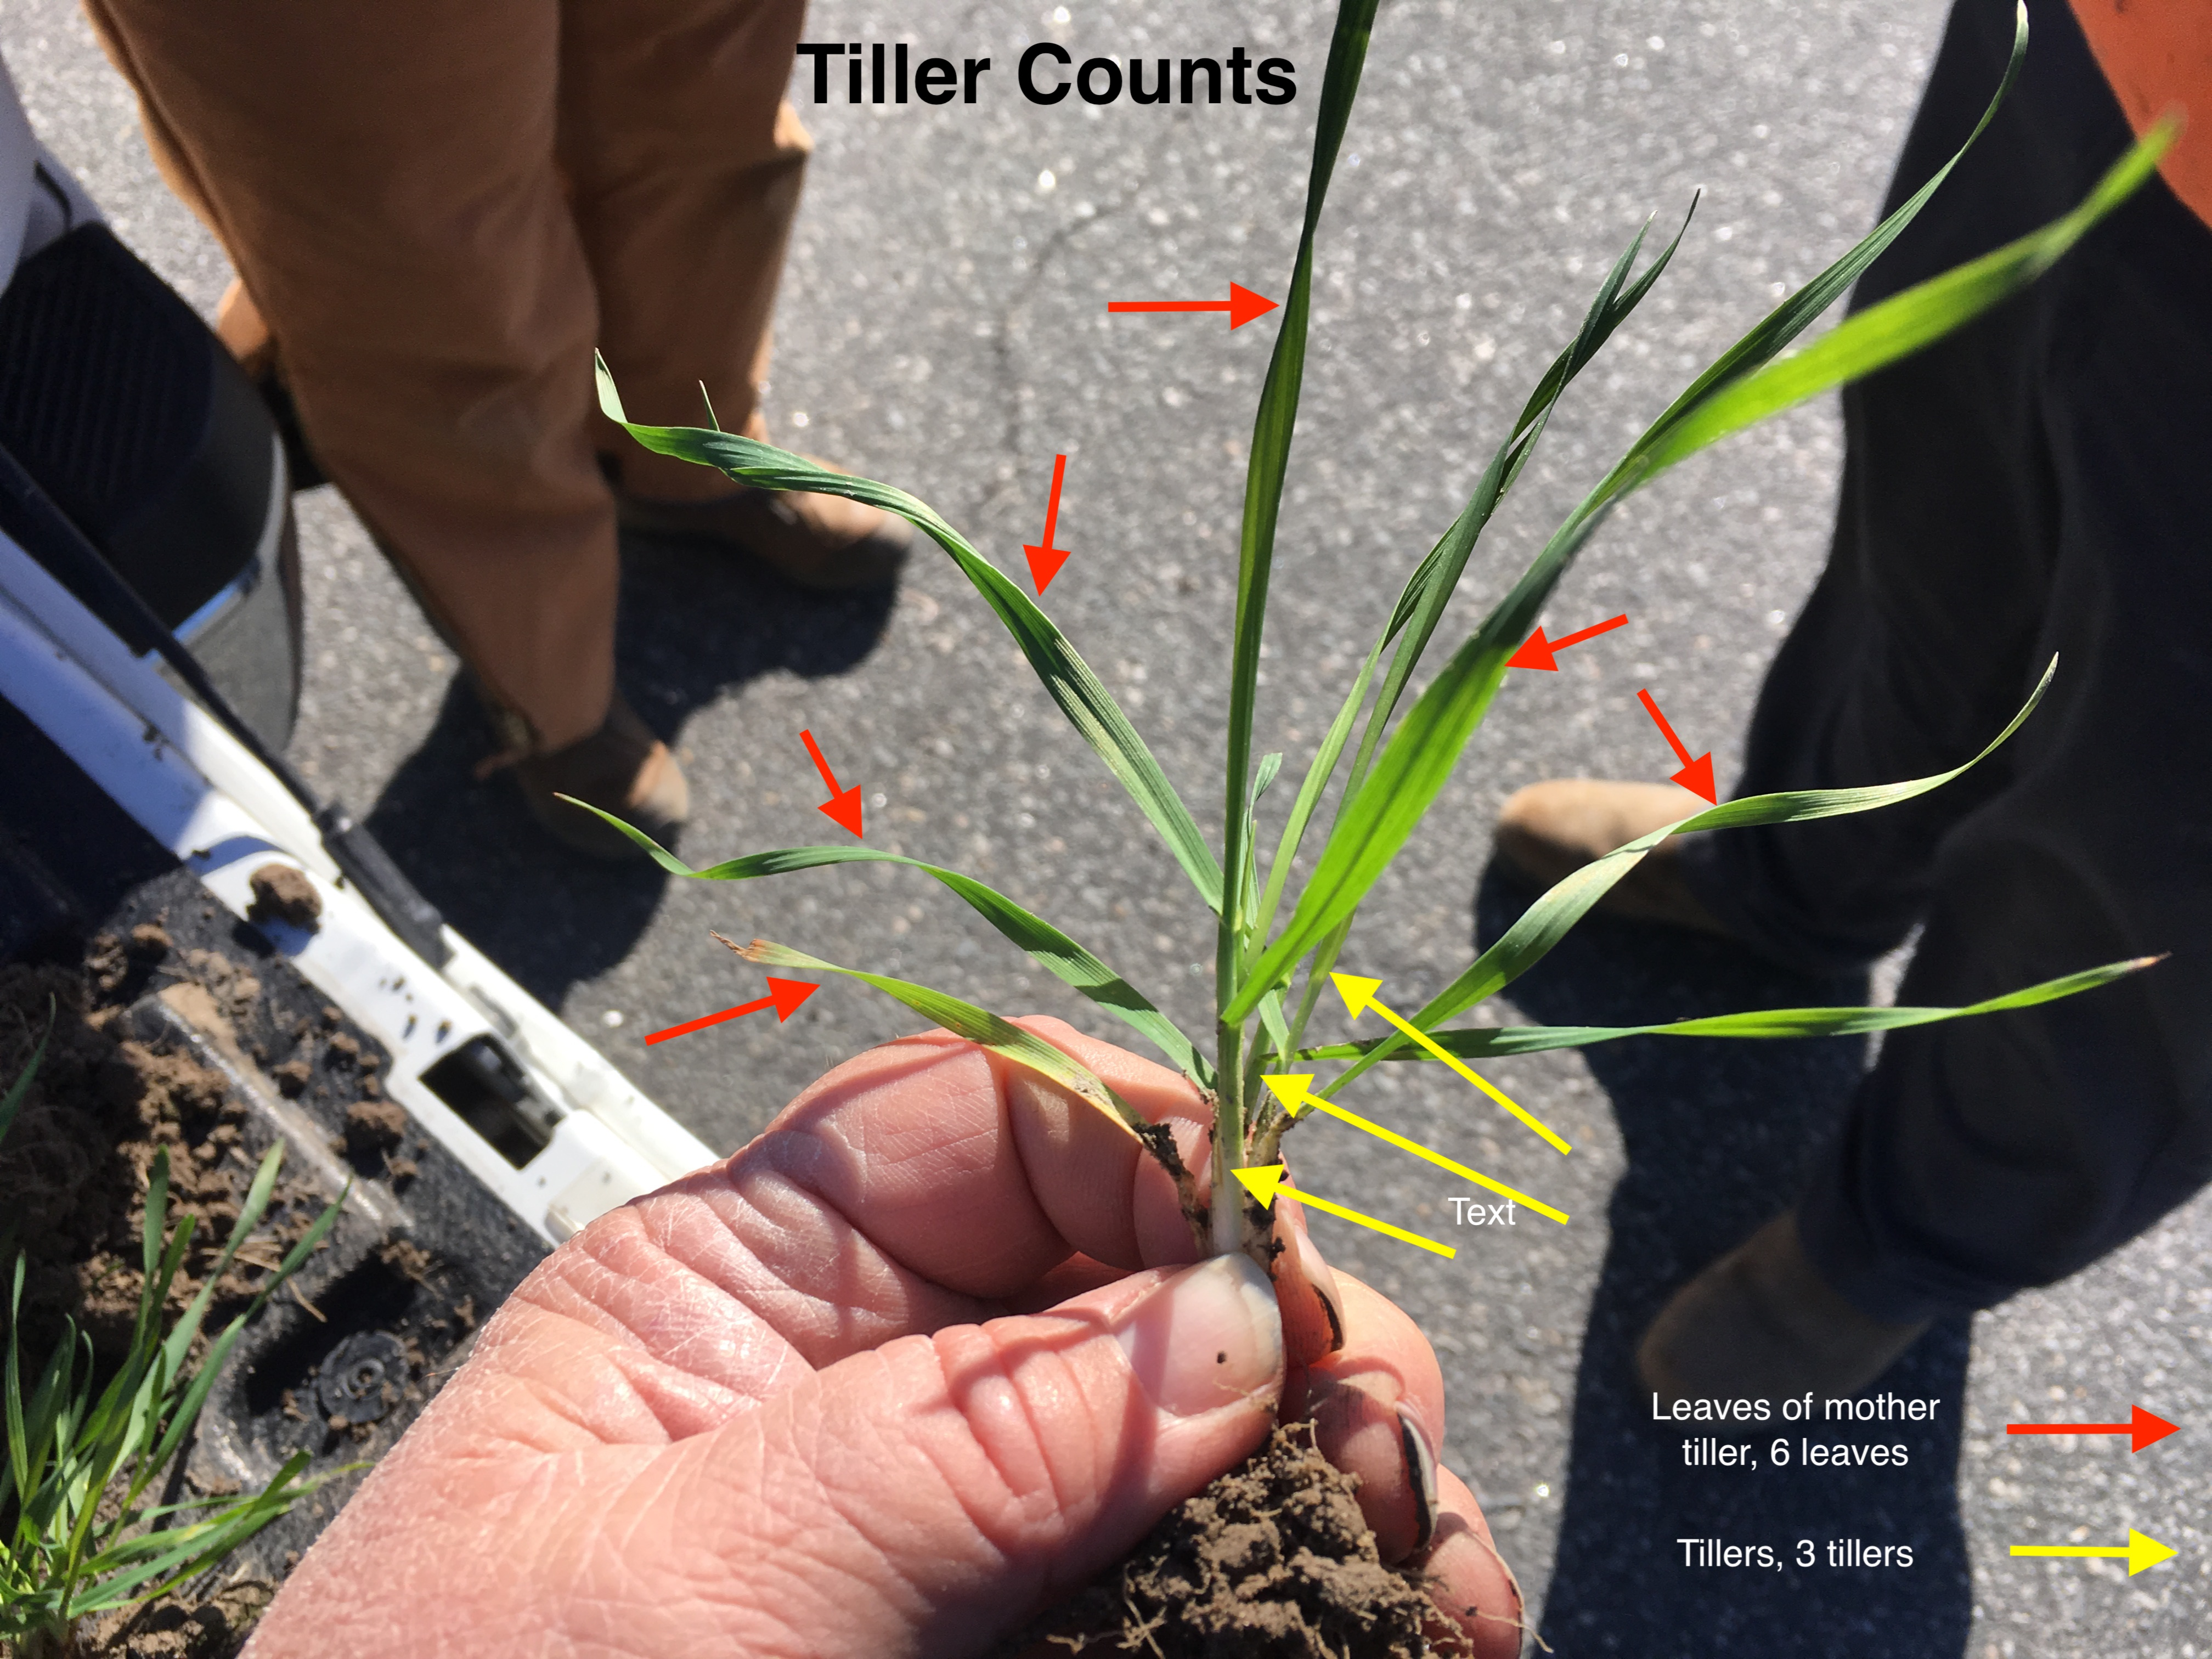 Diagram of wheat plant with regards to counting tillers